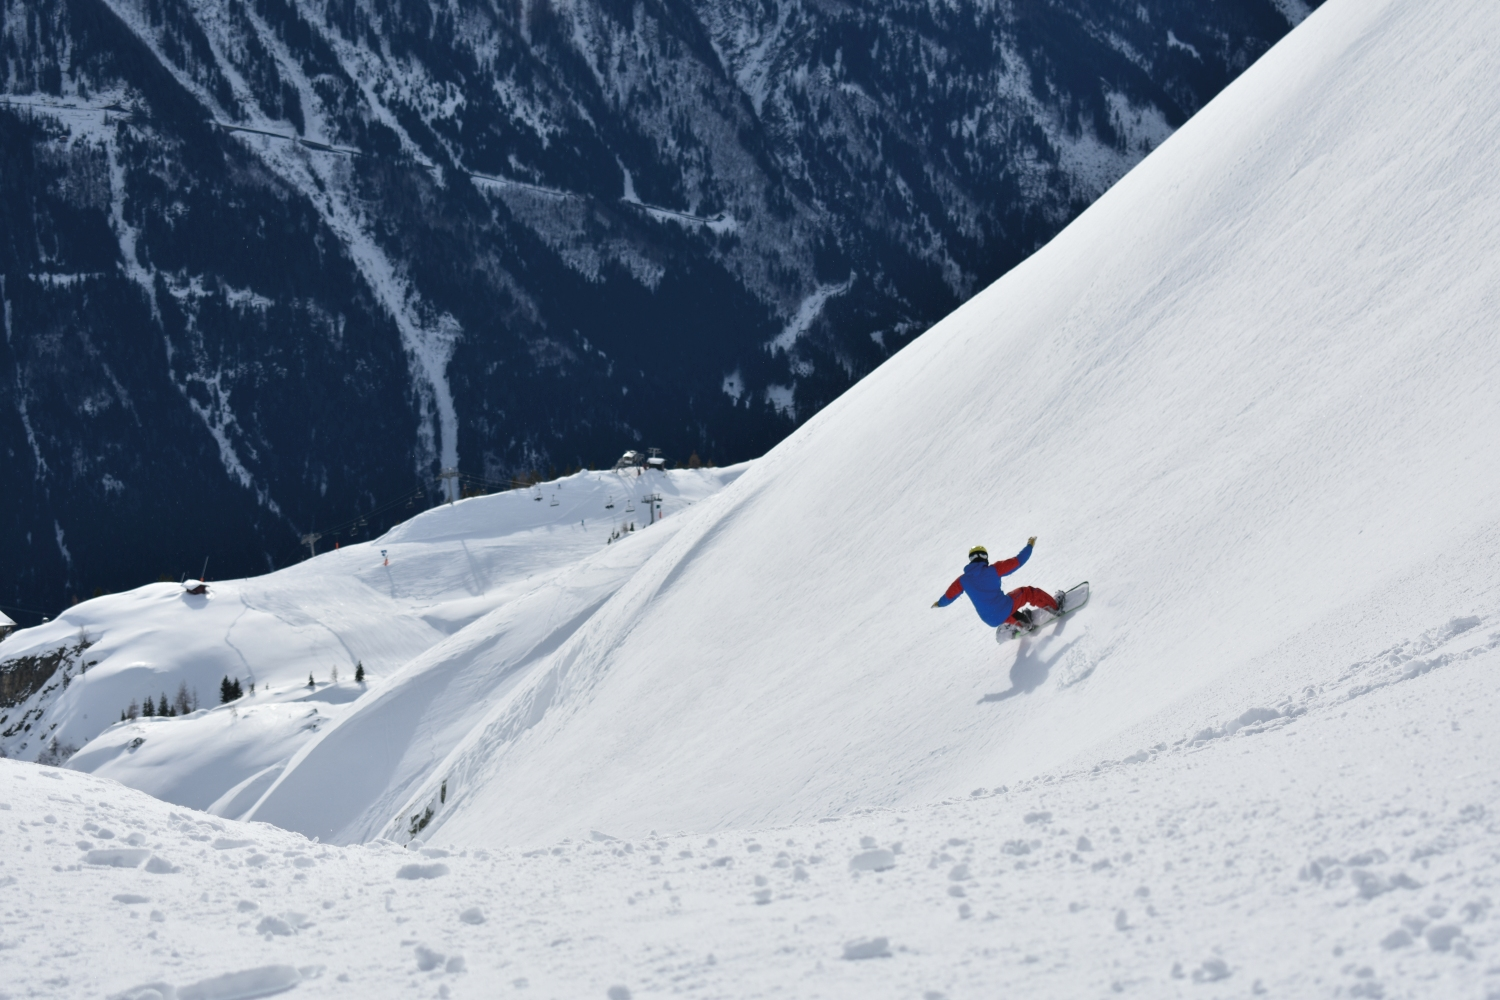 Snowboarding_Chamonix_France_CREDIT_Mike_Walker.JPG